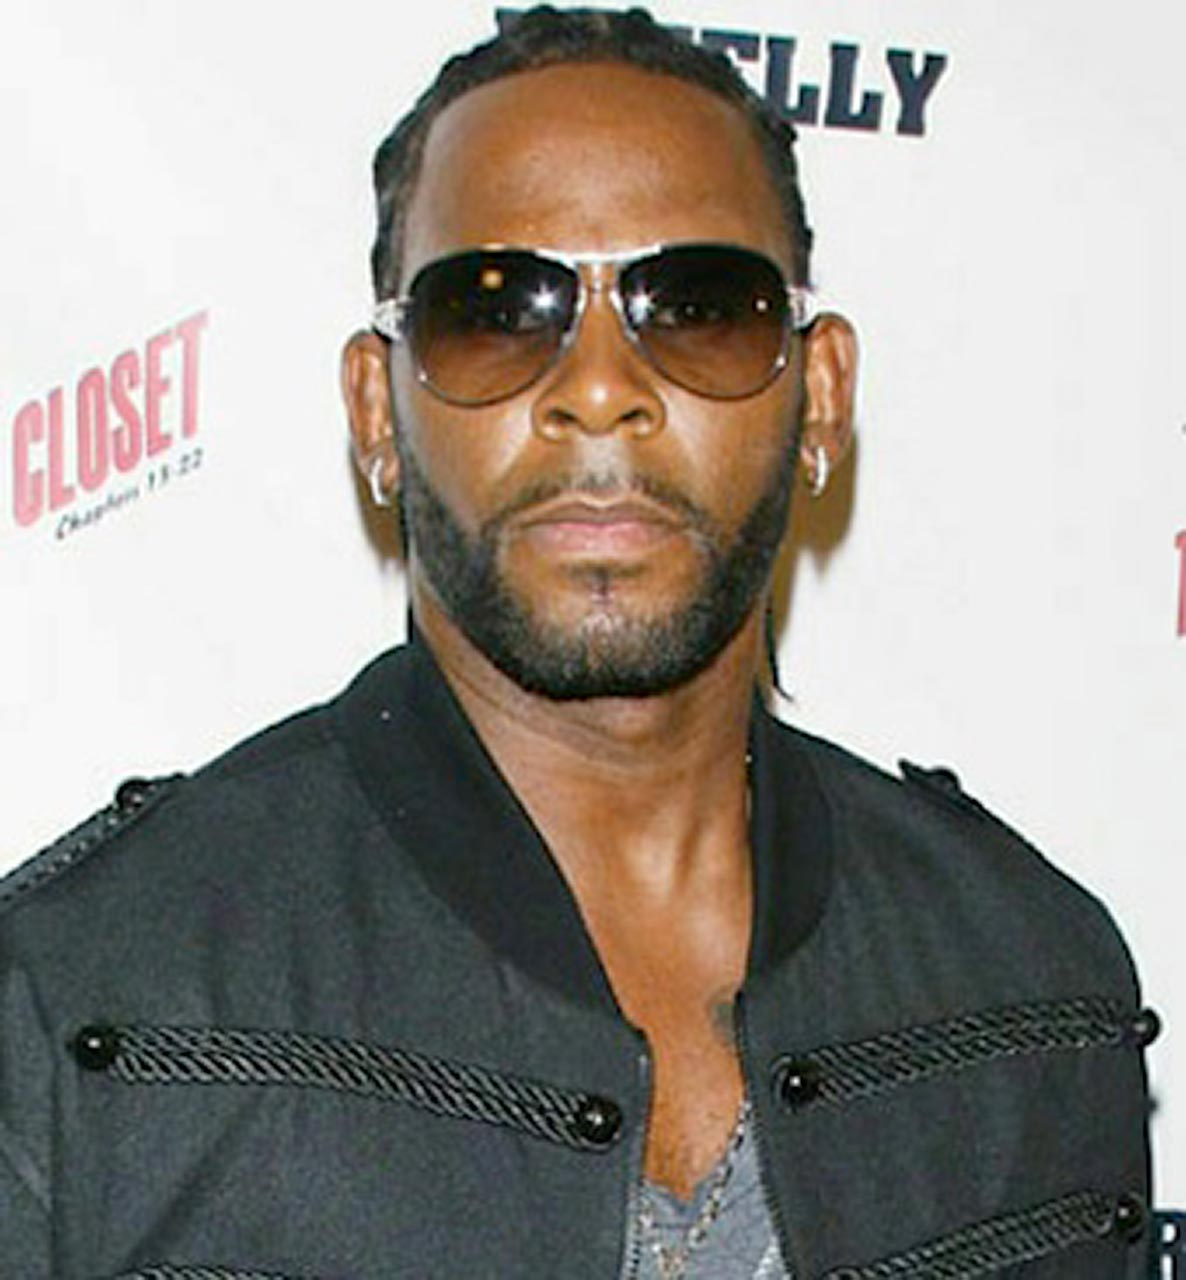 R kelly sex tape streaming pity